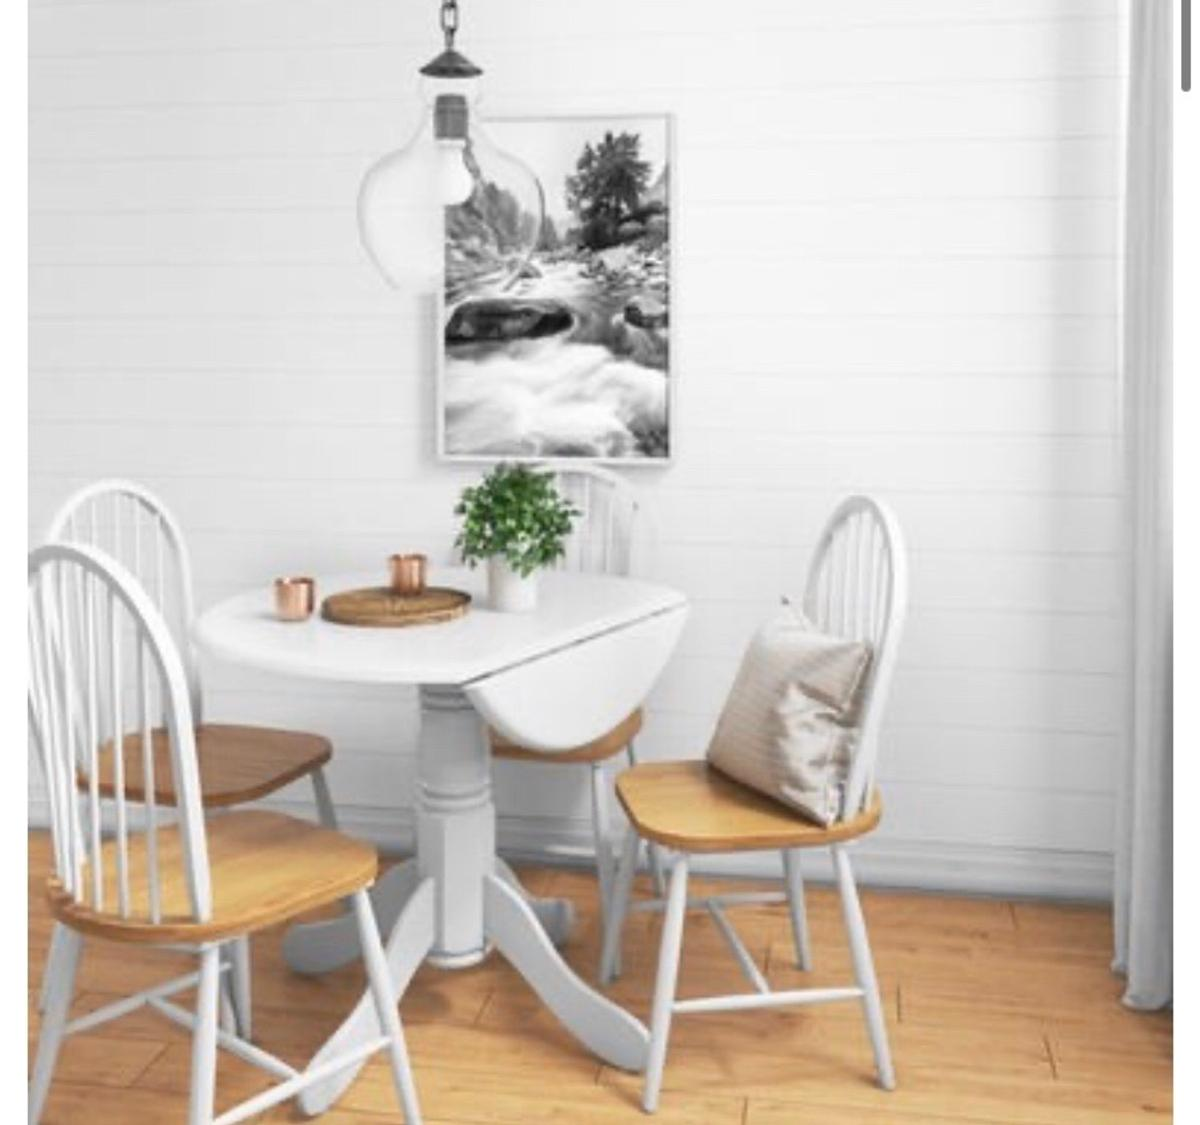 New and in box - solid rubber wood drop leaf table in white